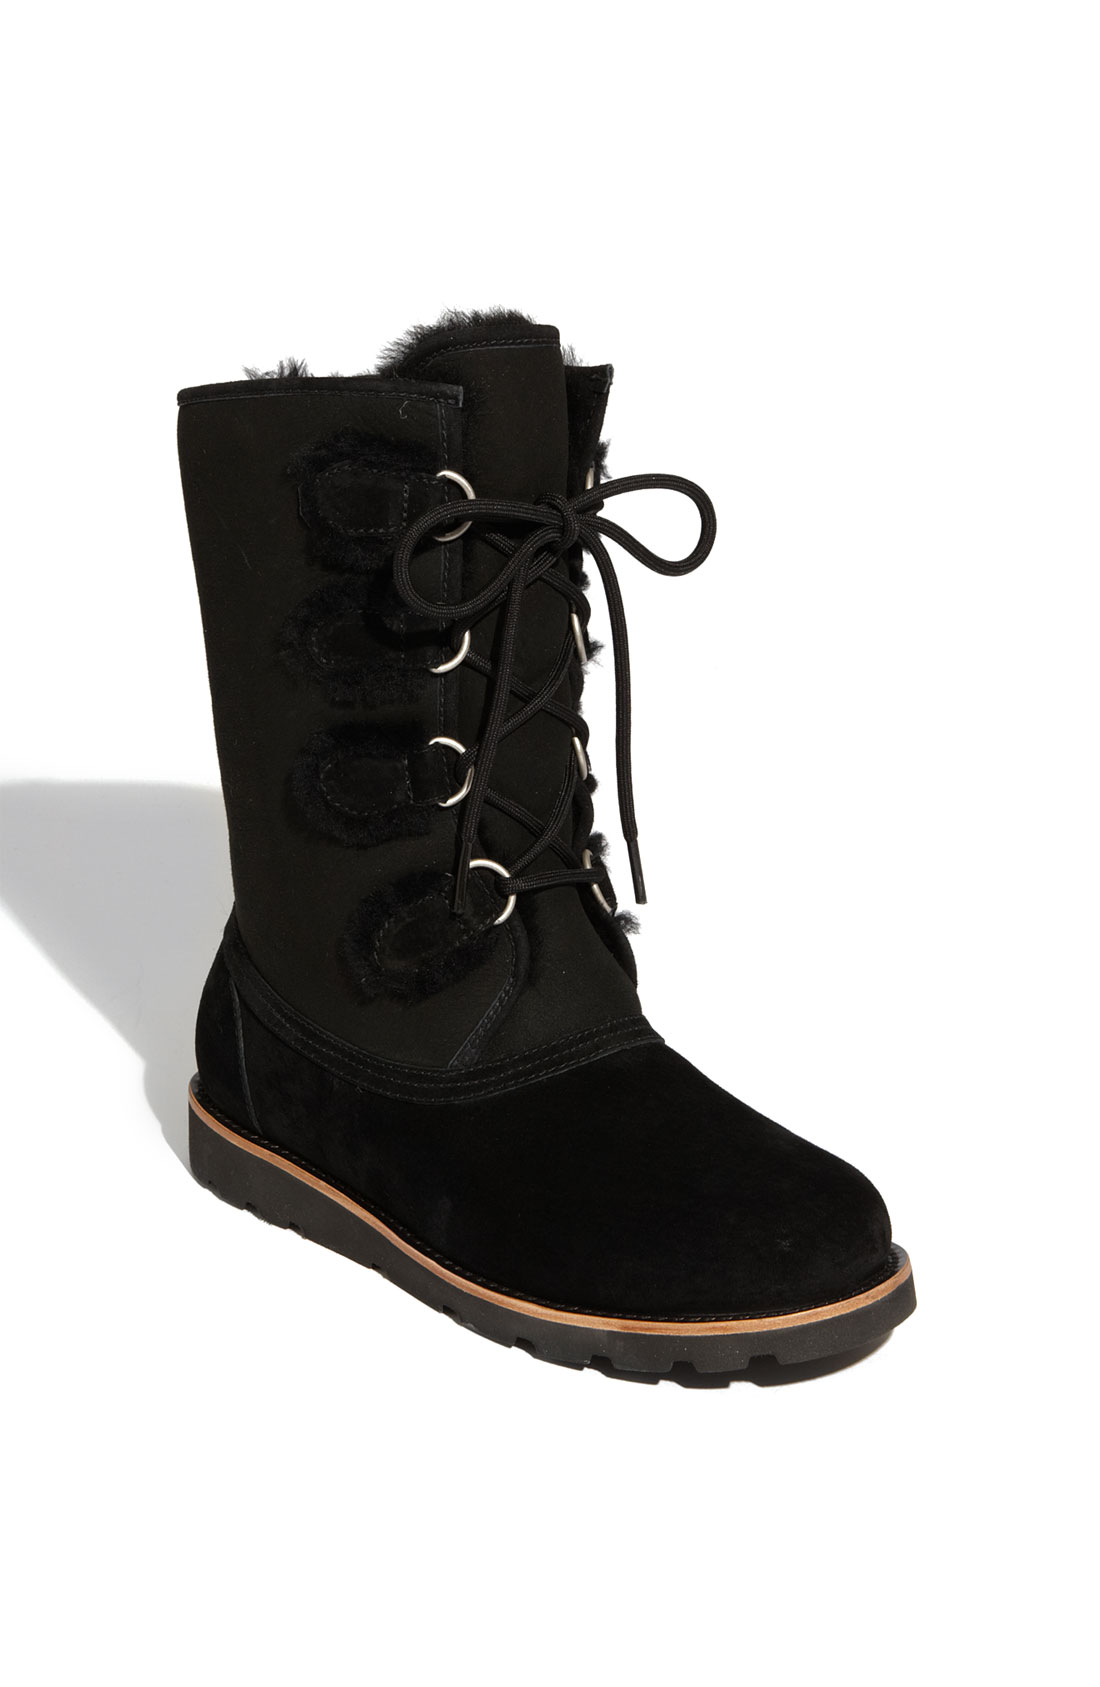 Ugg Black Suede And Shearling Lace Up Boot In Black Lyst